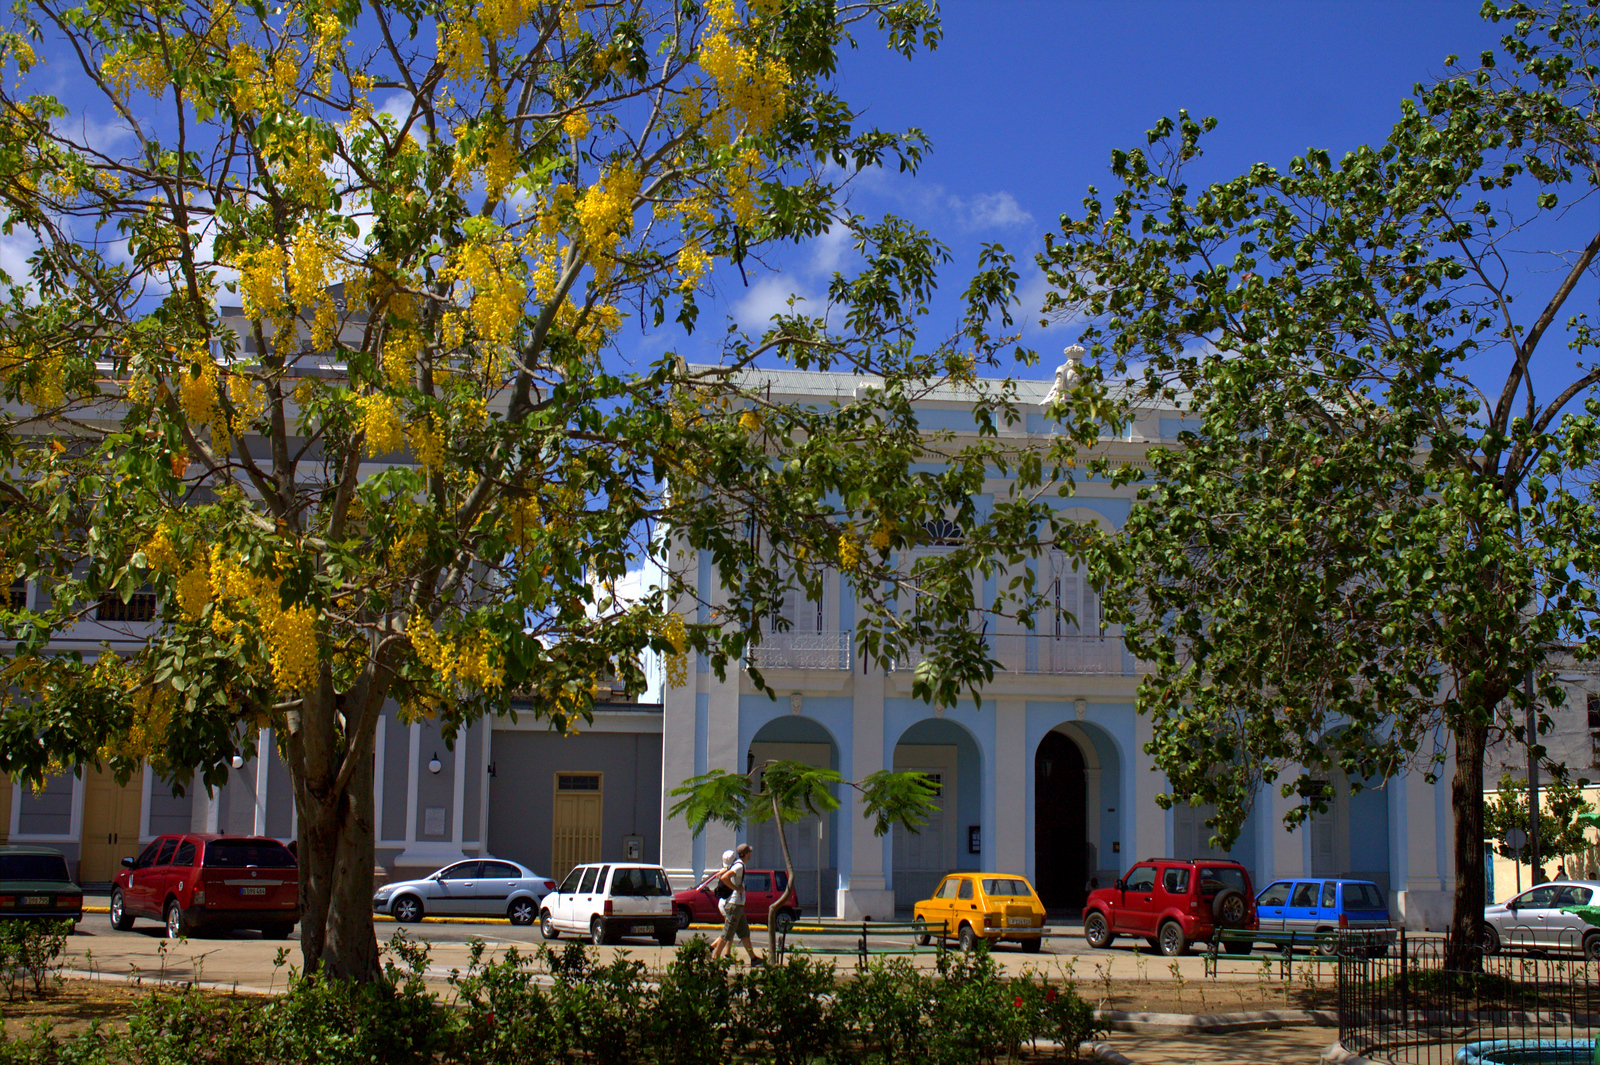 Things to do in Cienfuegos, Cuba